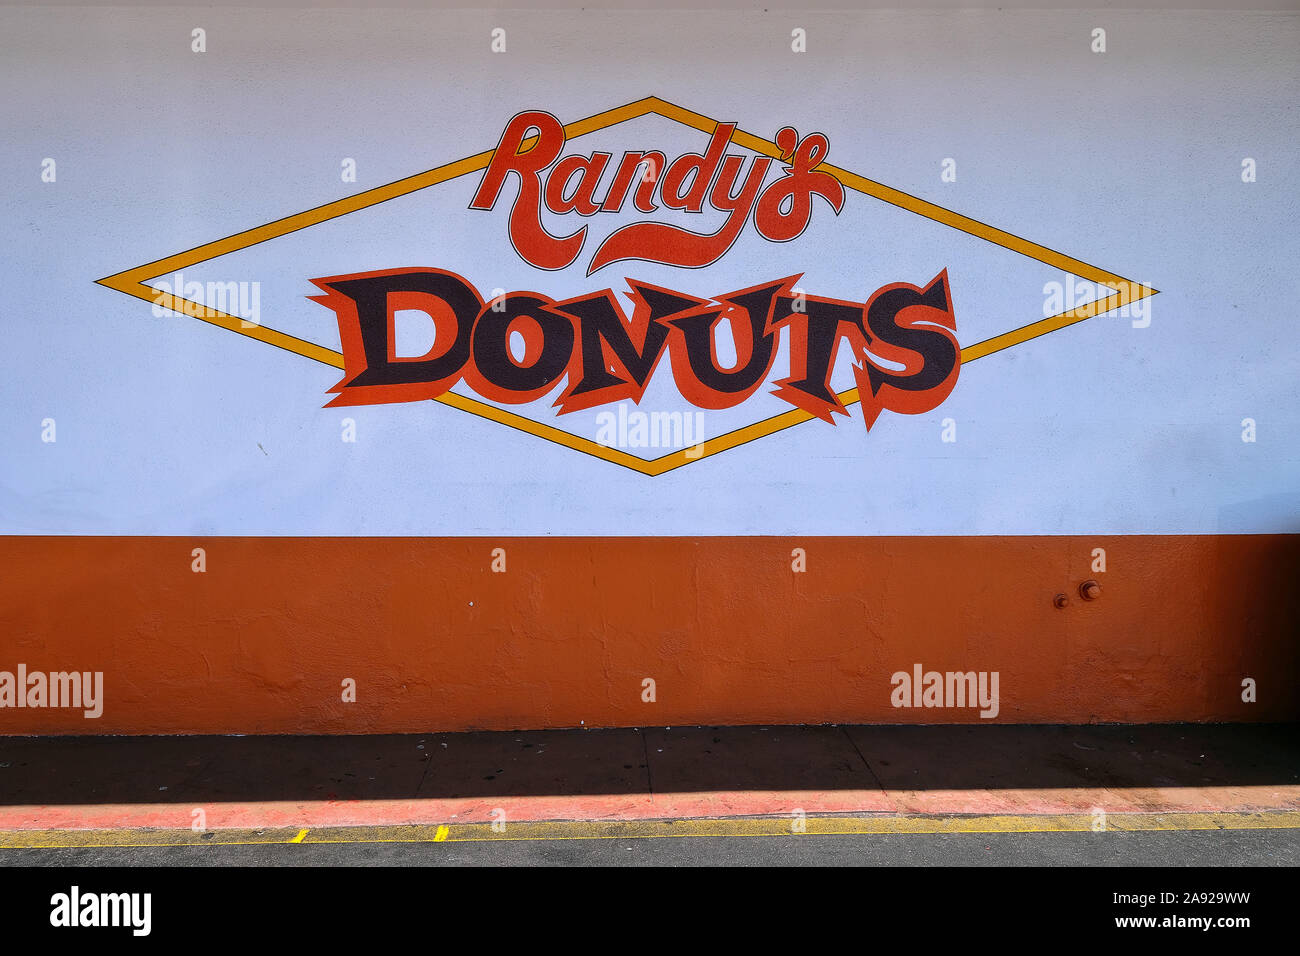 "Legendary donut snack ""Randy ""s Donut"" in the district Inglewood, Los Angeles, California, USA Stock Photo"